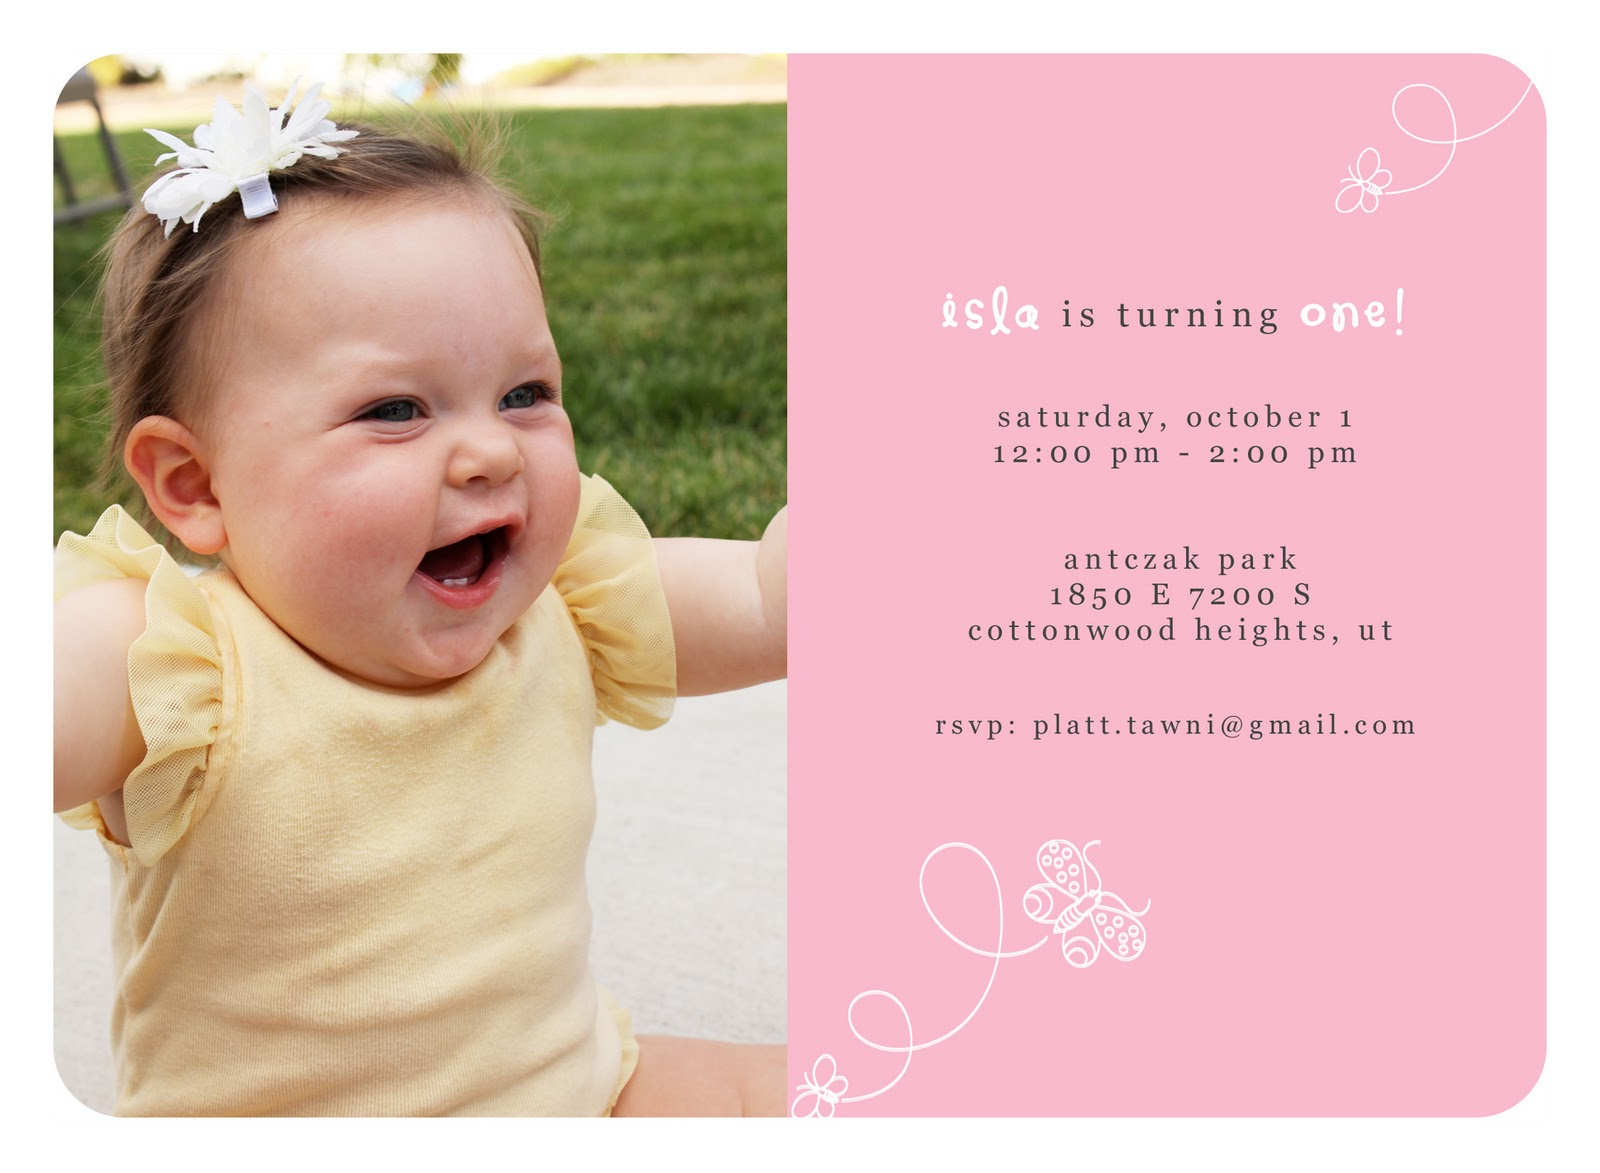 1st birthday invitations templates with photo free ; baby_birthday_invitation_card_template_3